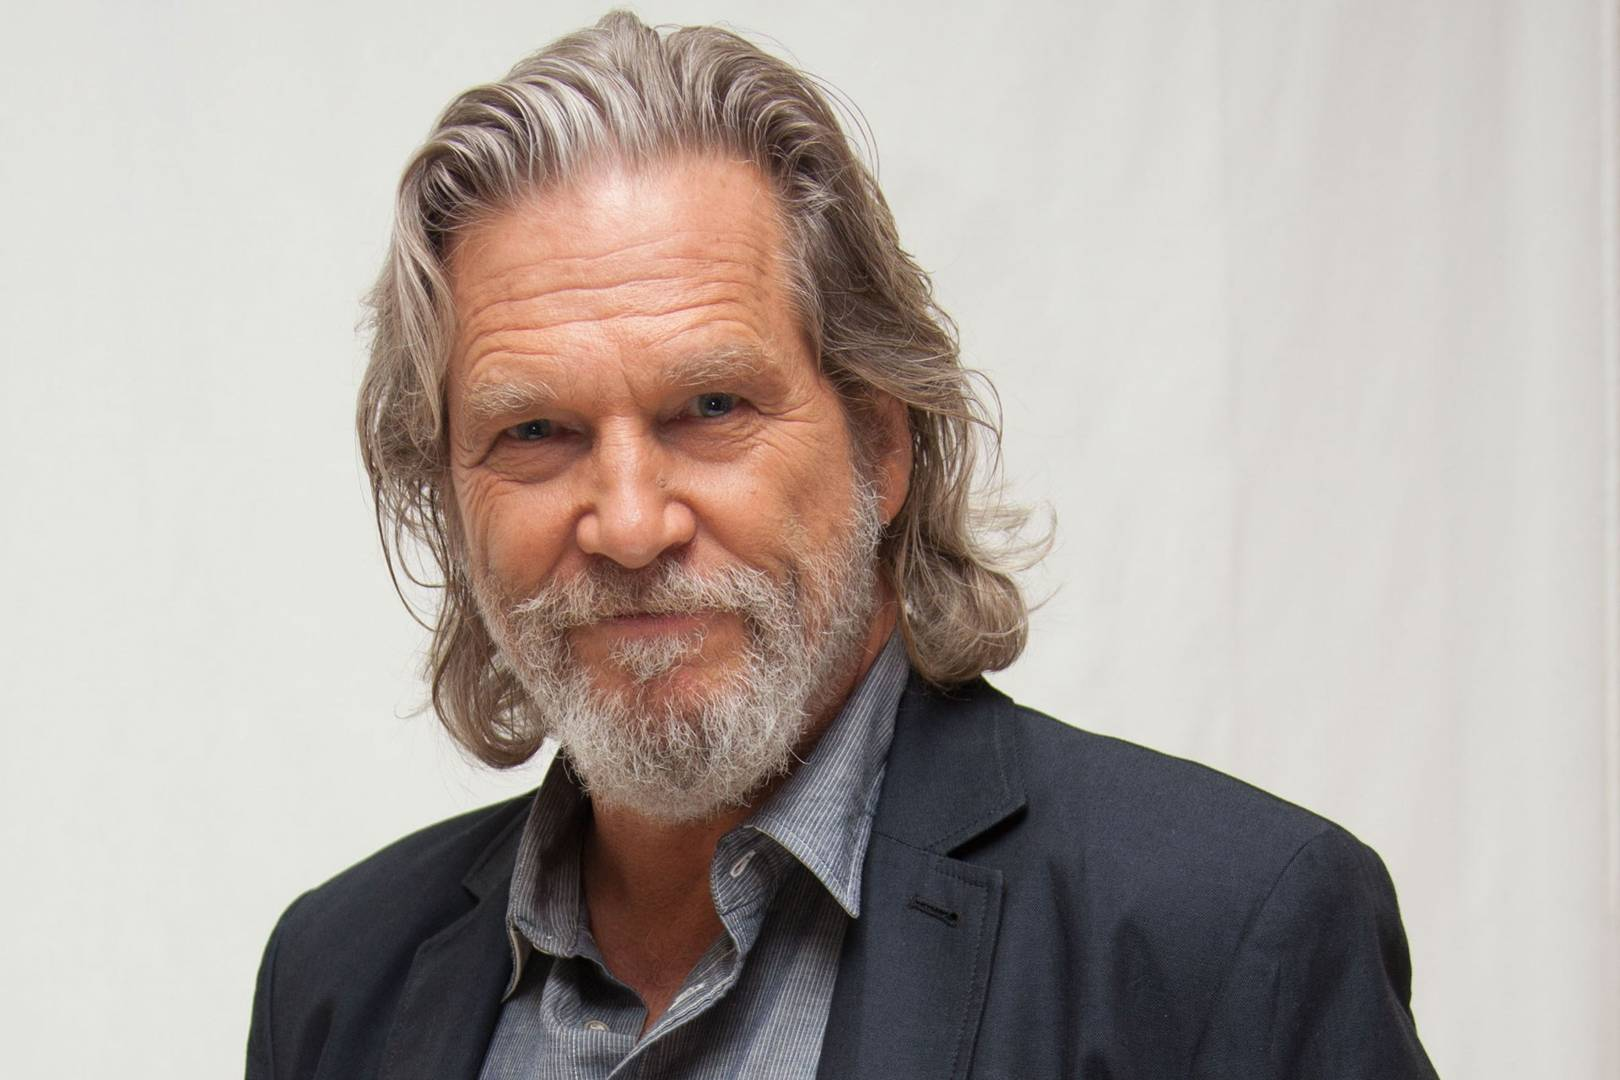 Does Jeff Bridges Have a Wife or Brother?